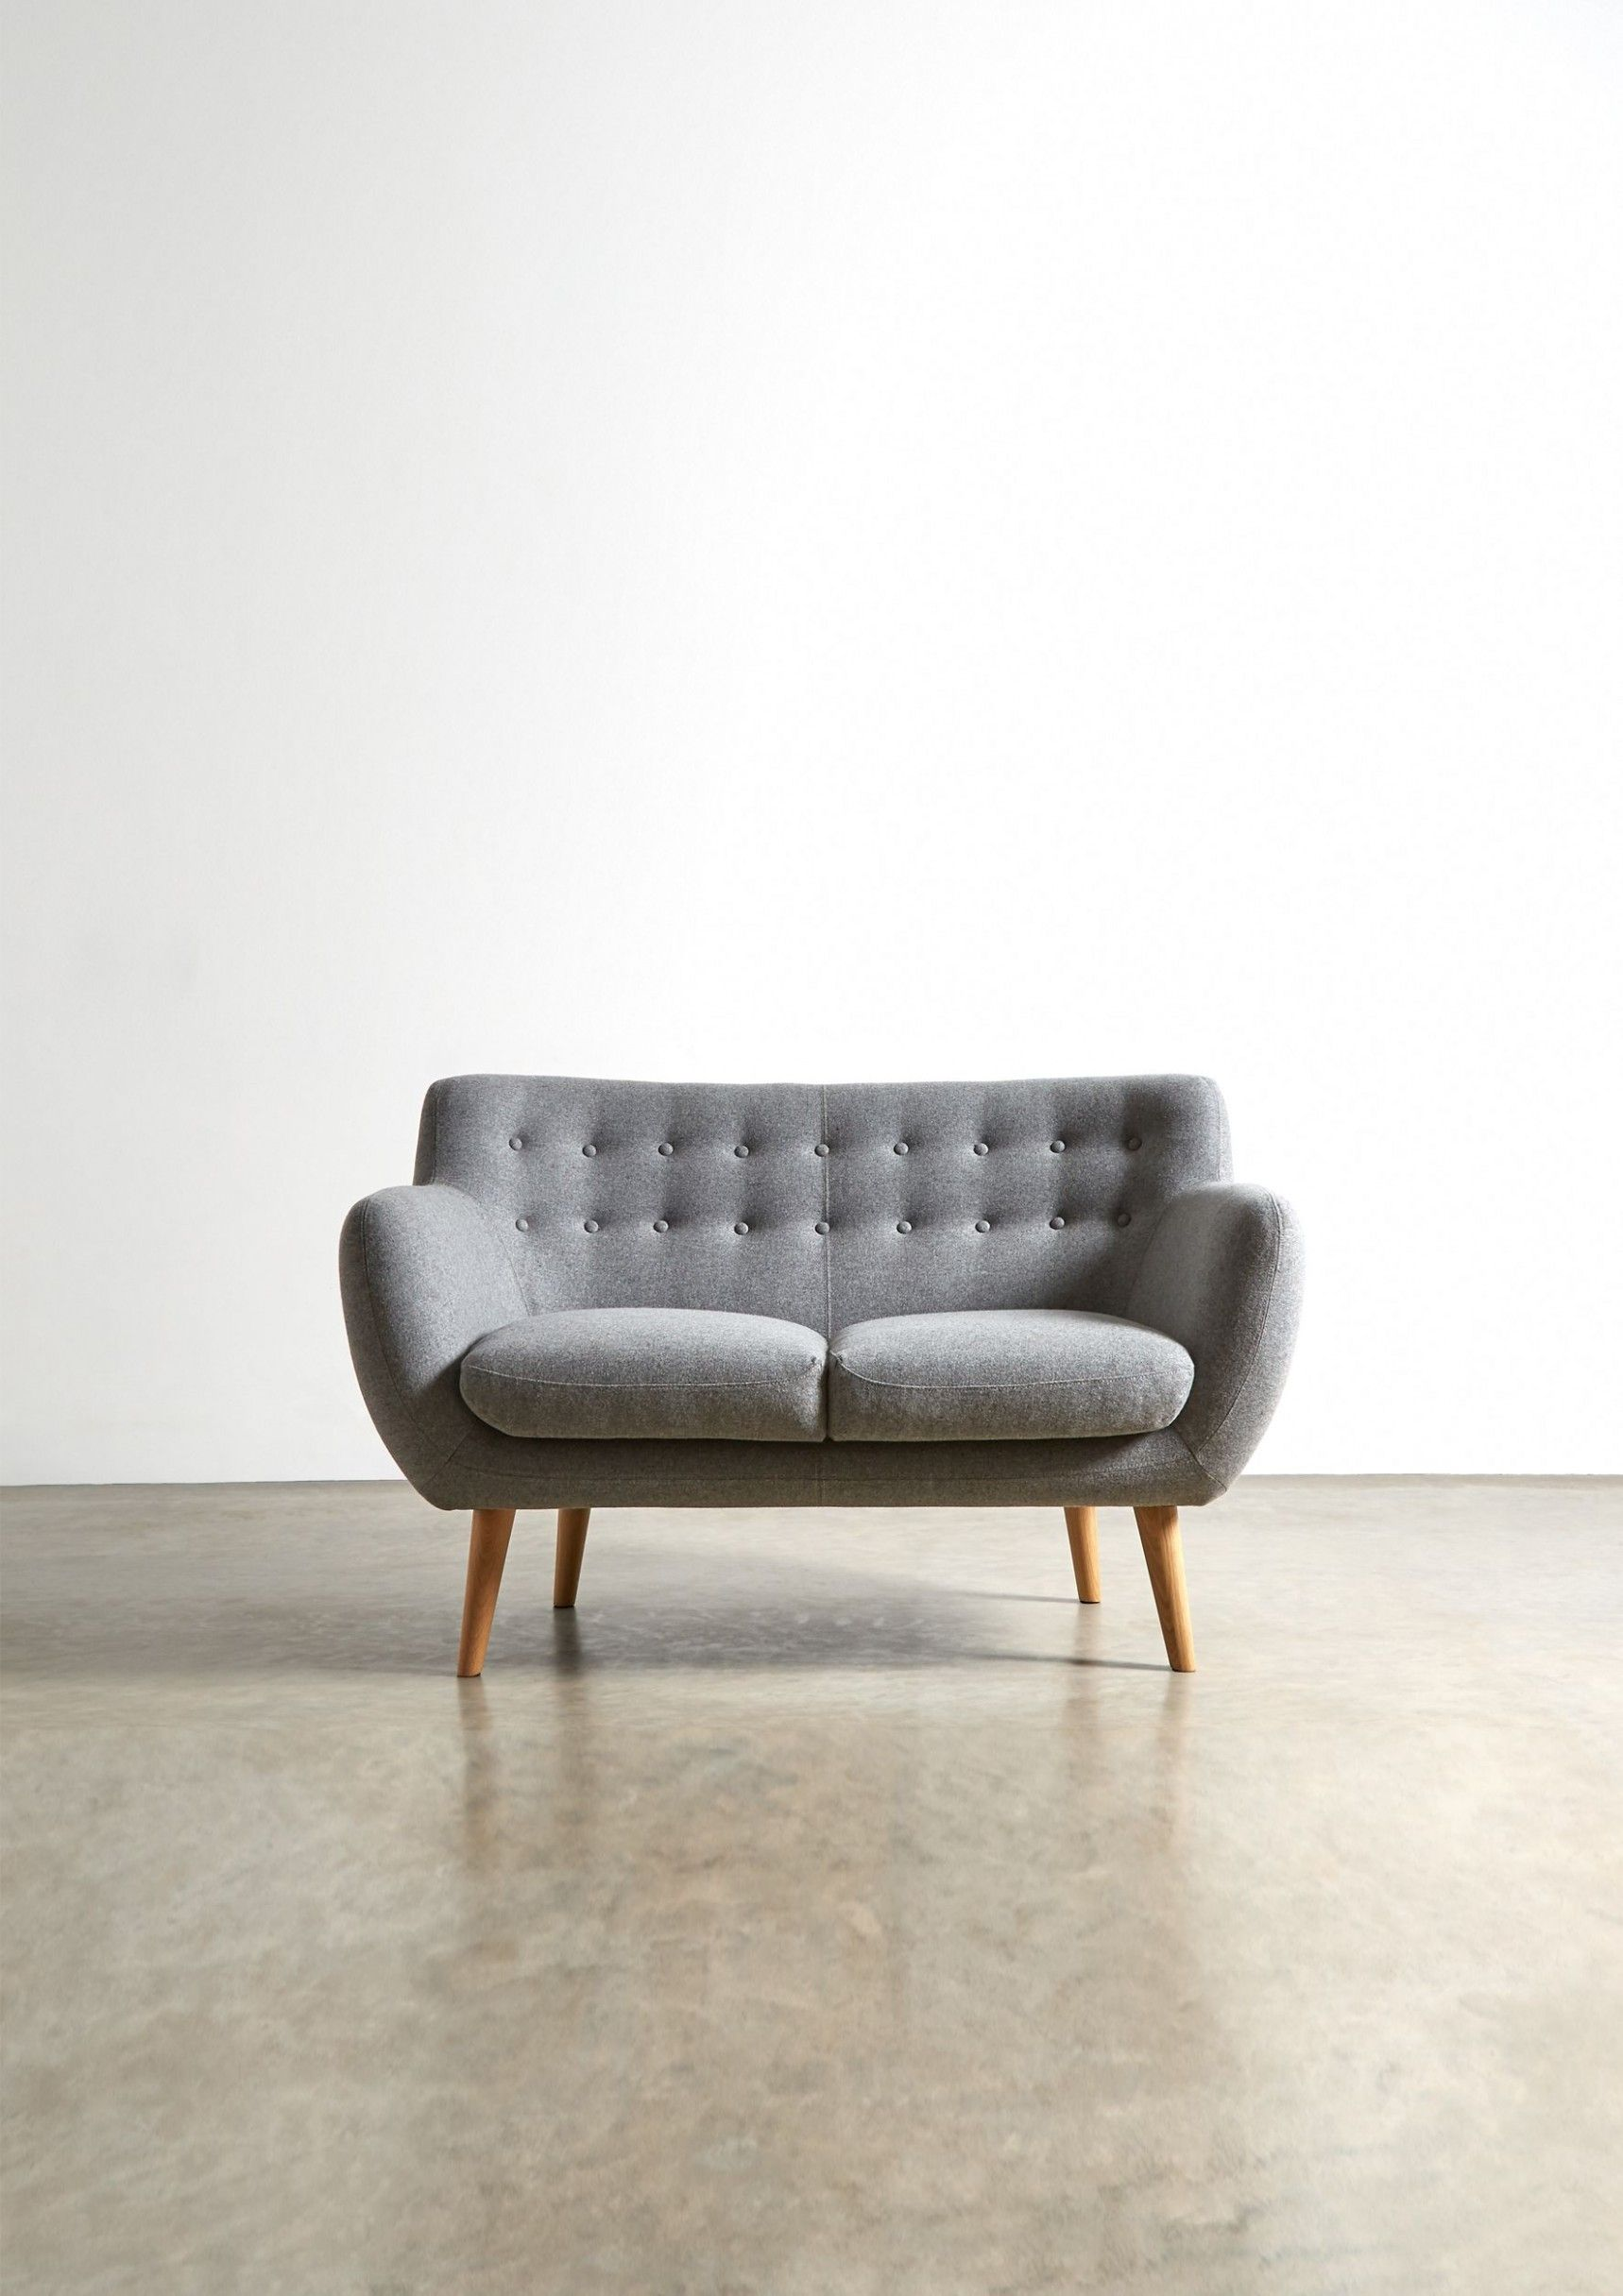 Pin By Wenimenet On Home Ideas Sofa Inspiration Small Couch Sofa